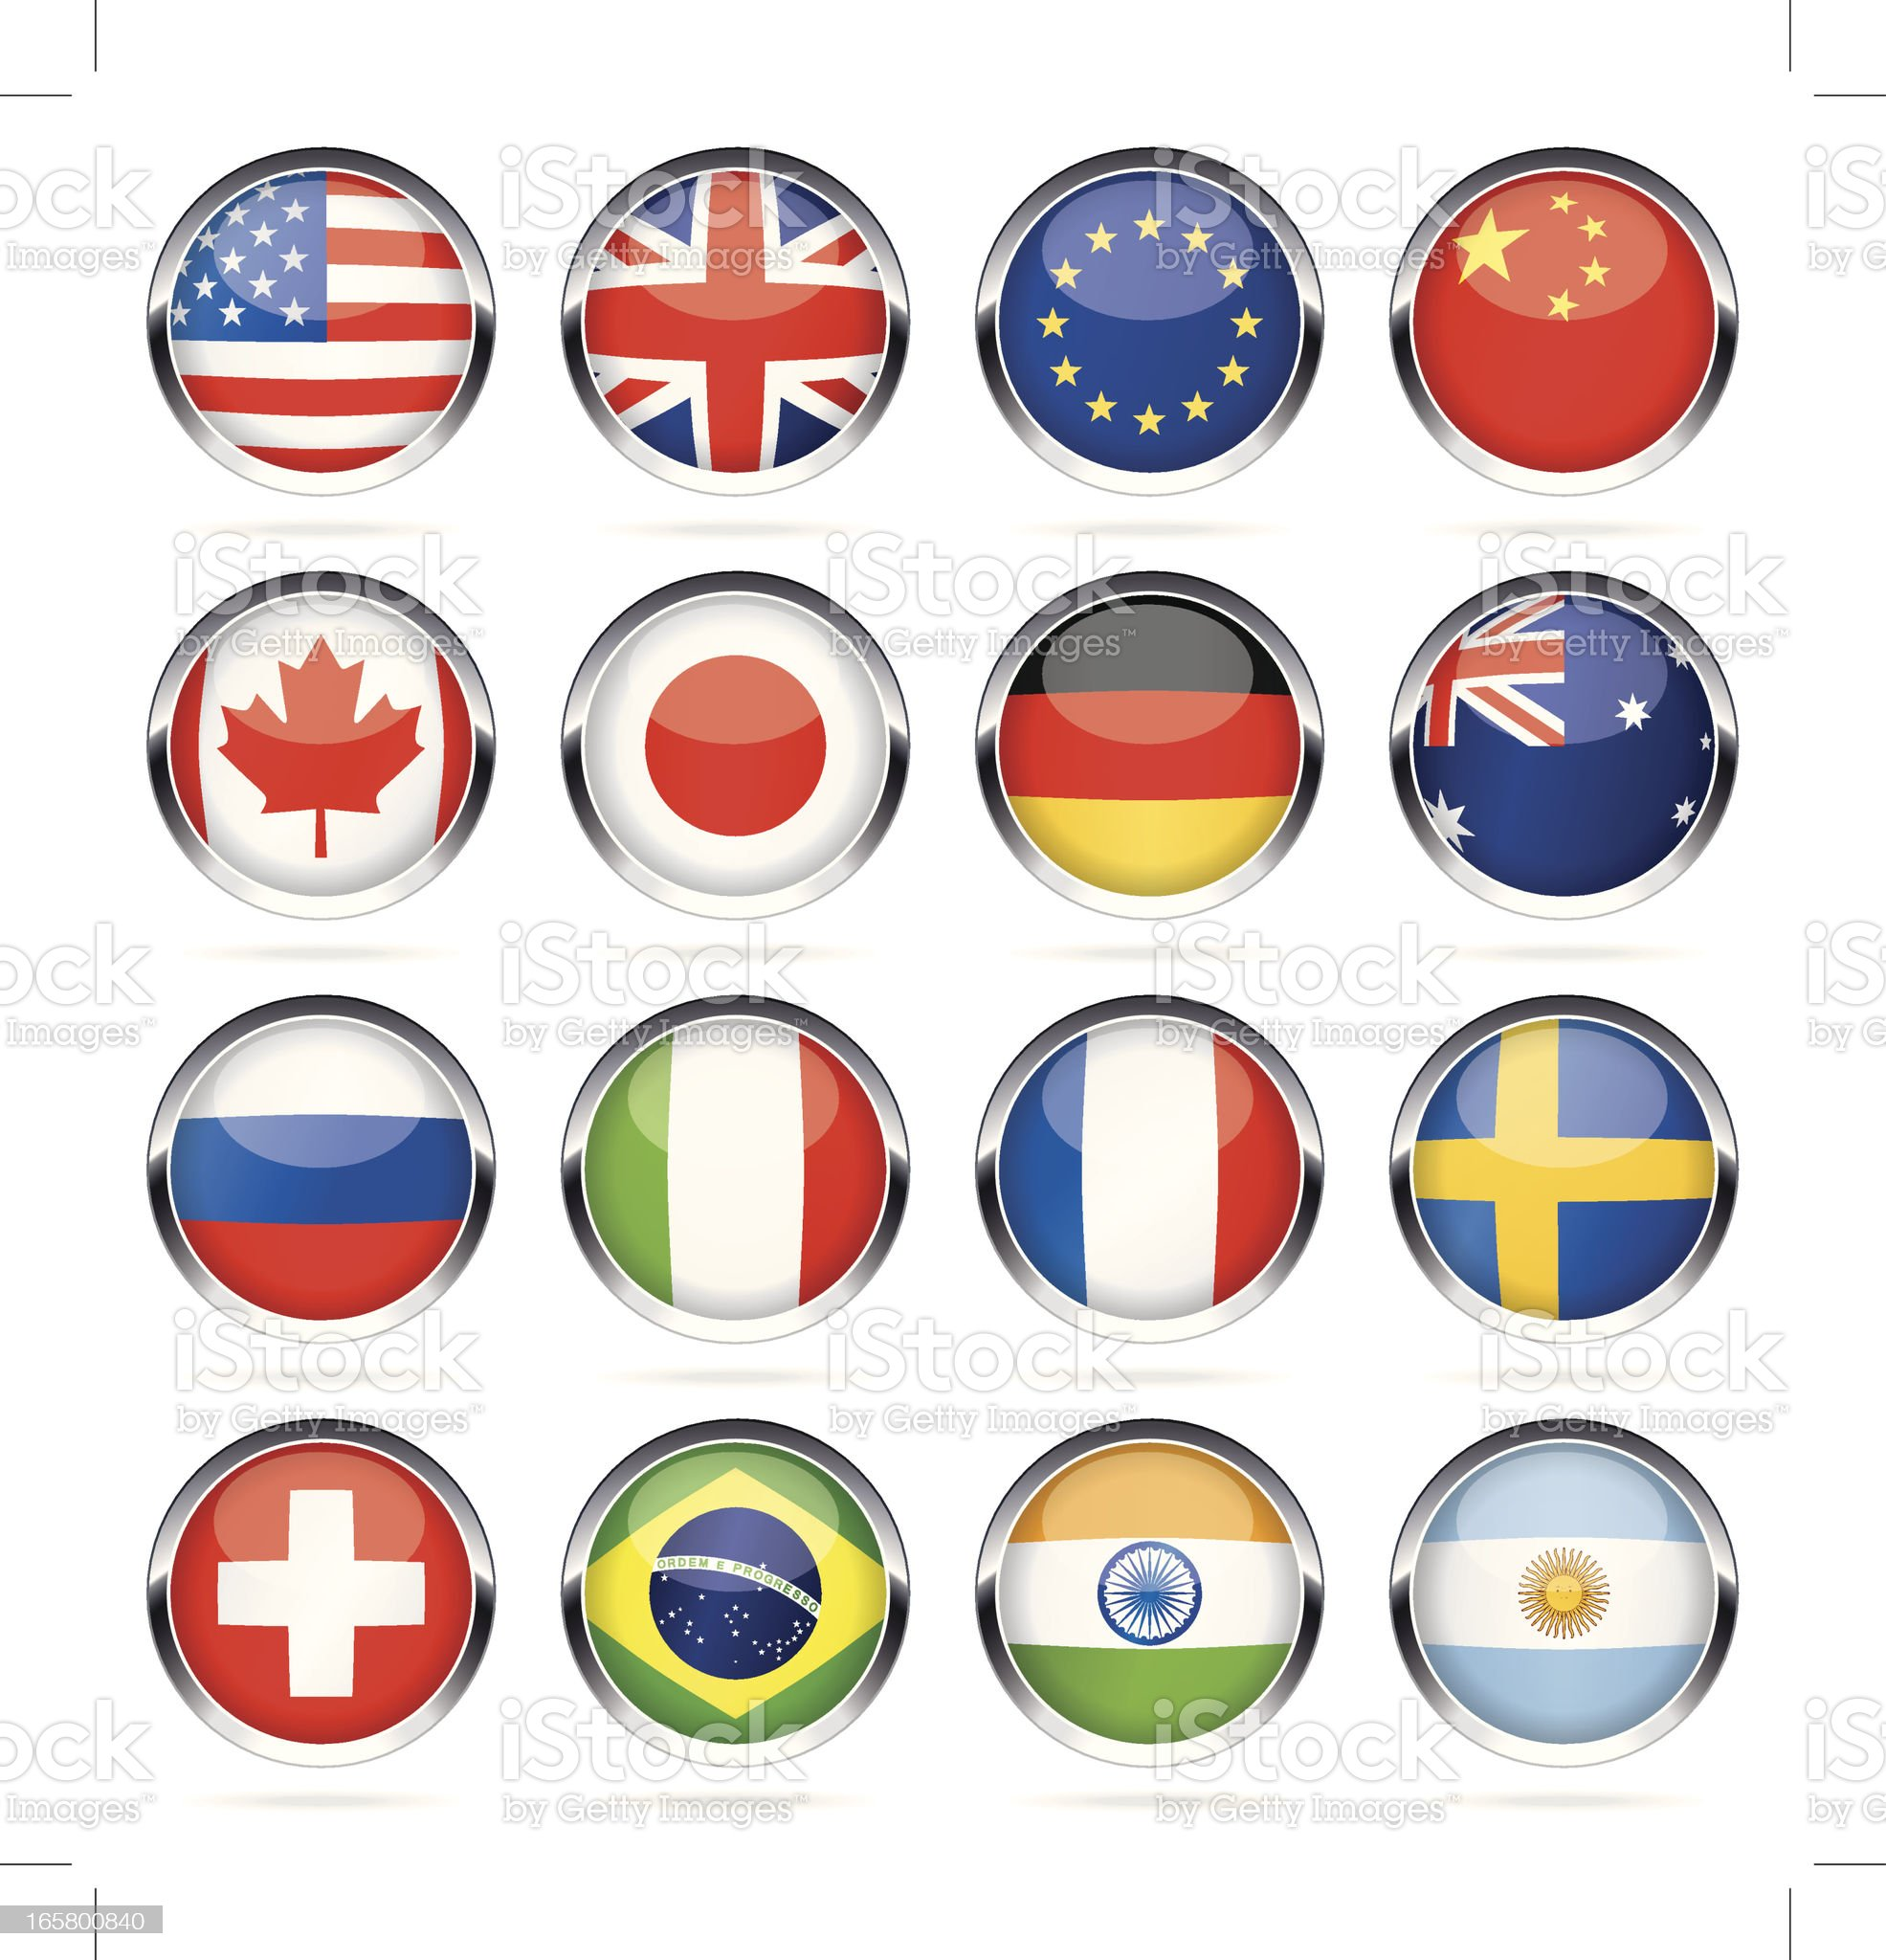 Chrome round most popular flag icons royalty-free stock vector art